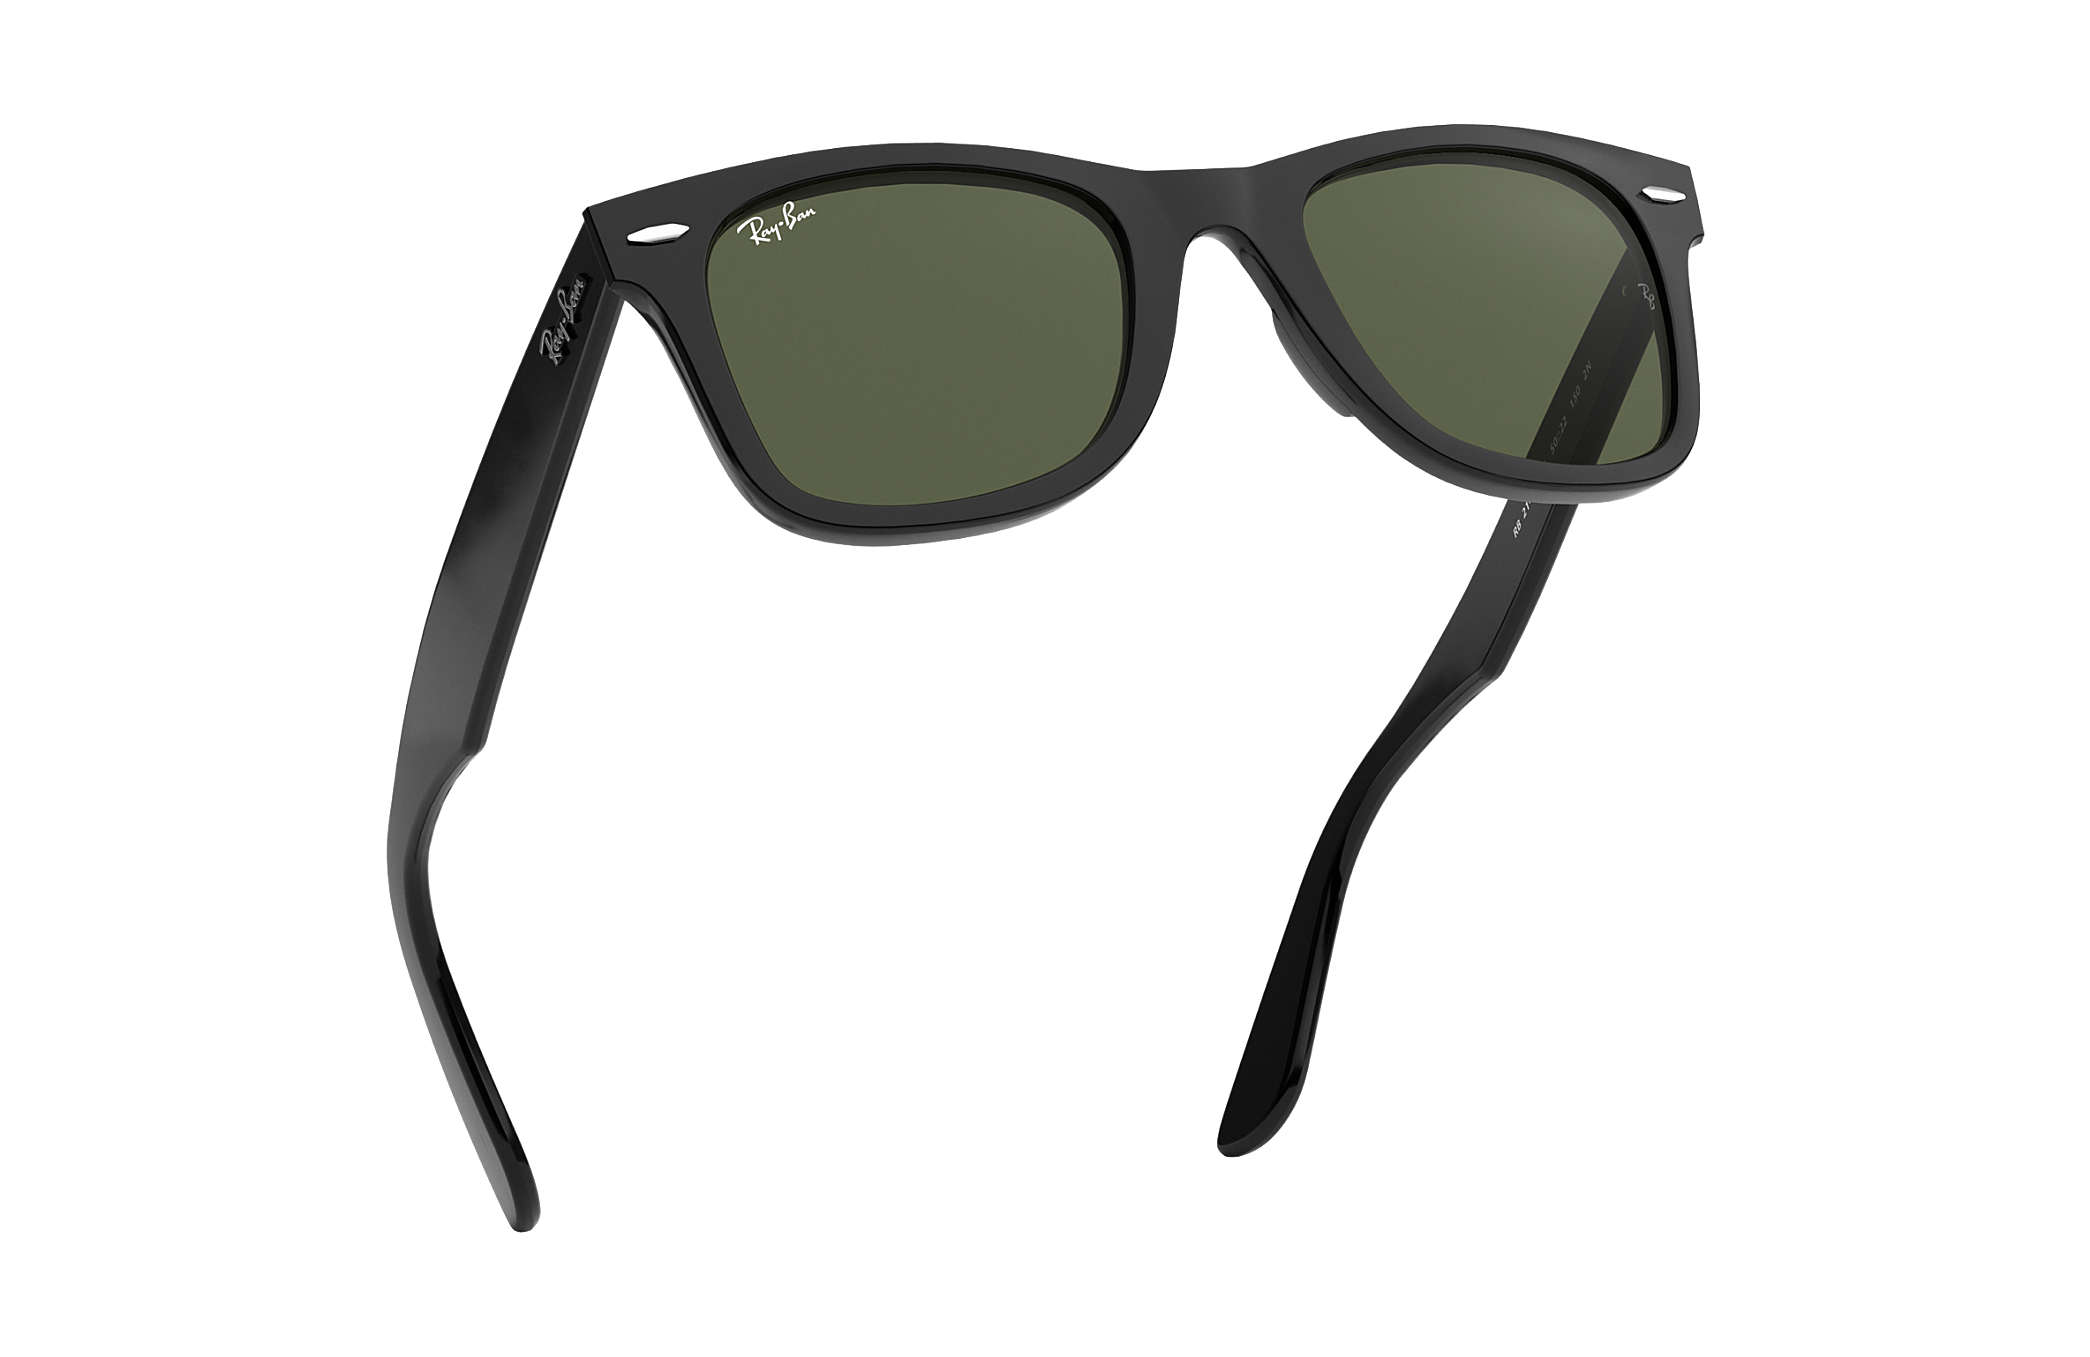 ef42fa3e6a Ray-Ban Original Wayfarer Classic RB2140 Black - Acetate - Green ...